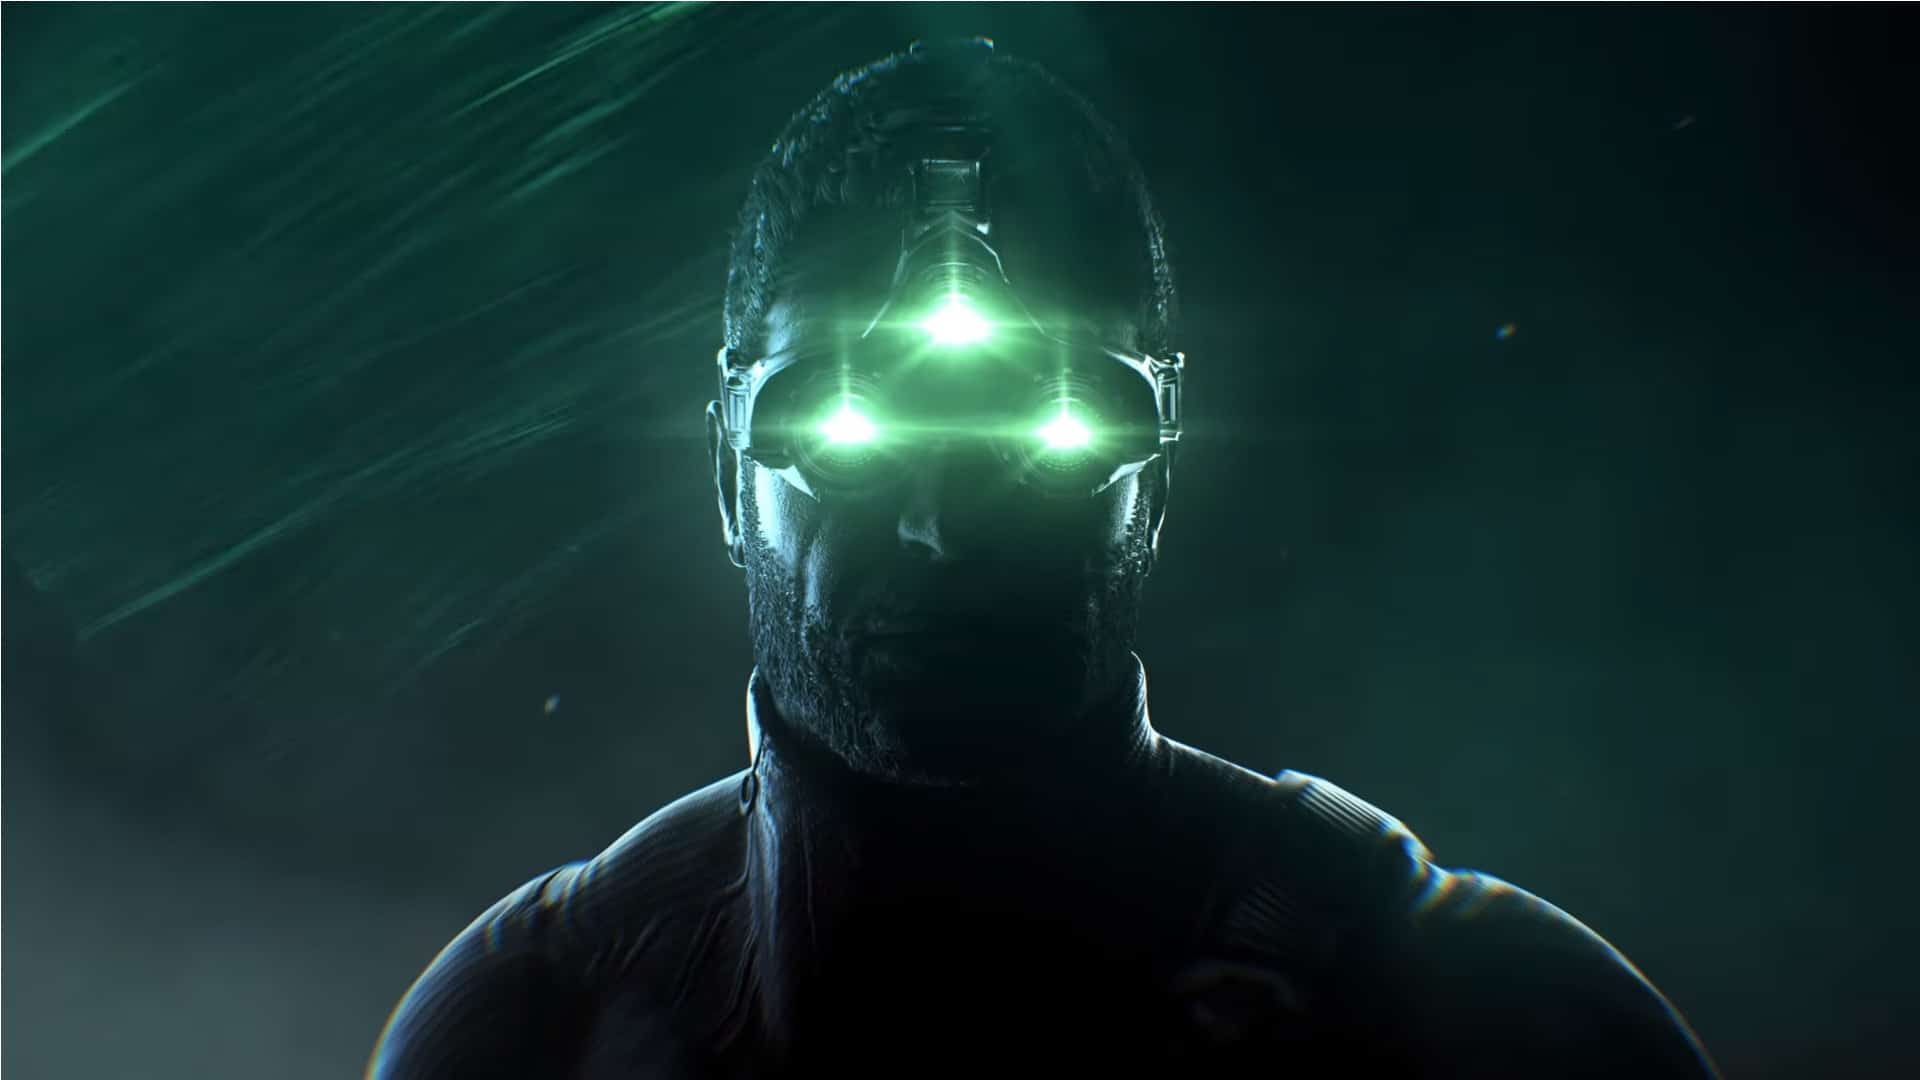 Splinter Cell Sequel Hinted at in Michael Ironside Interview